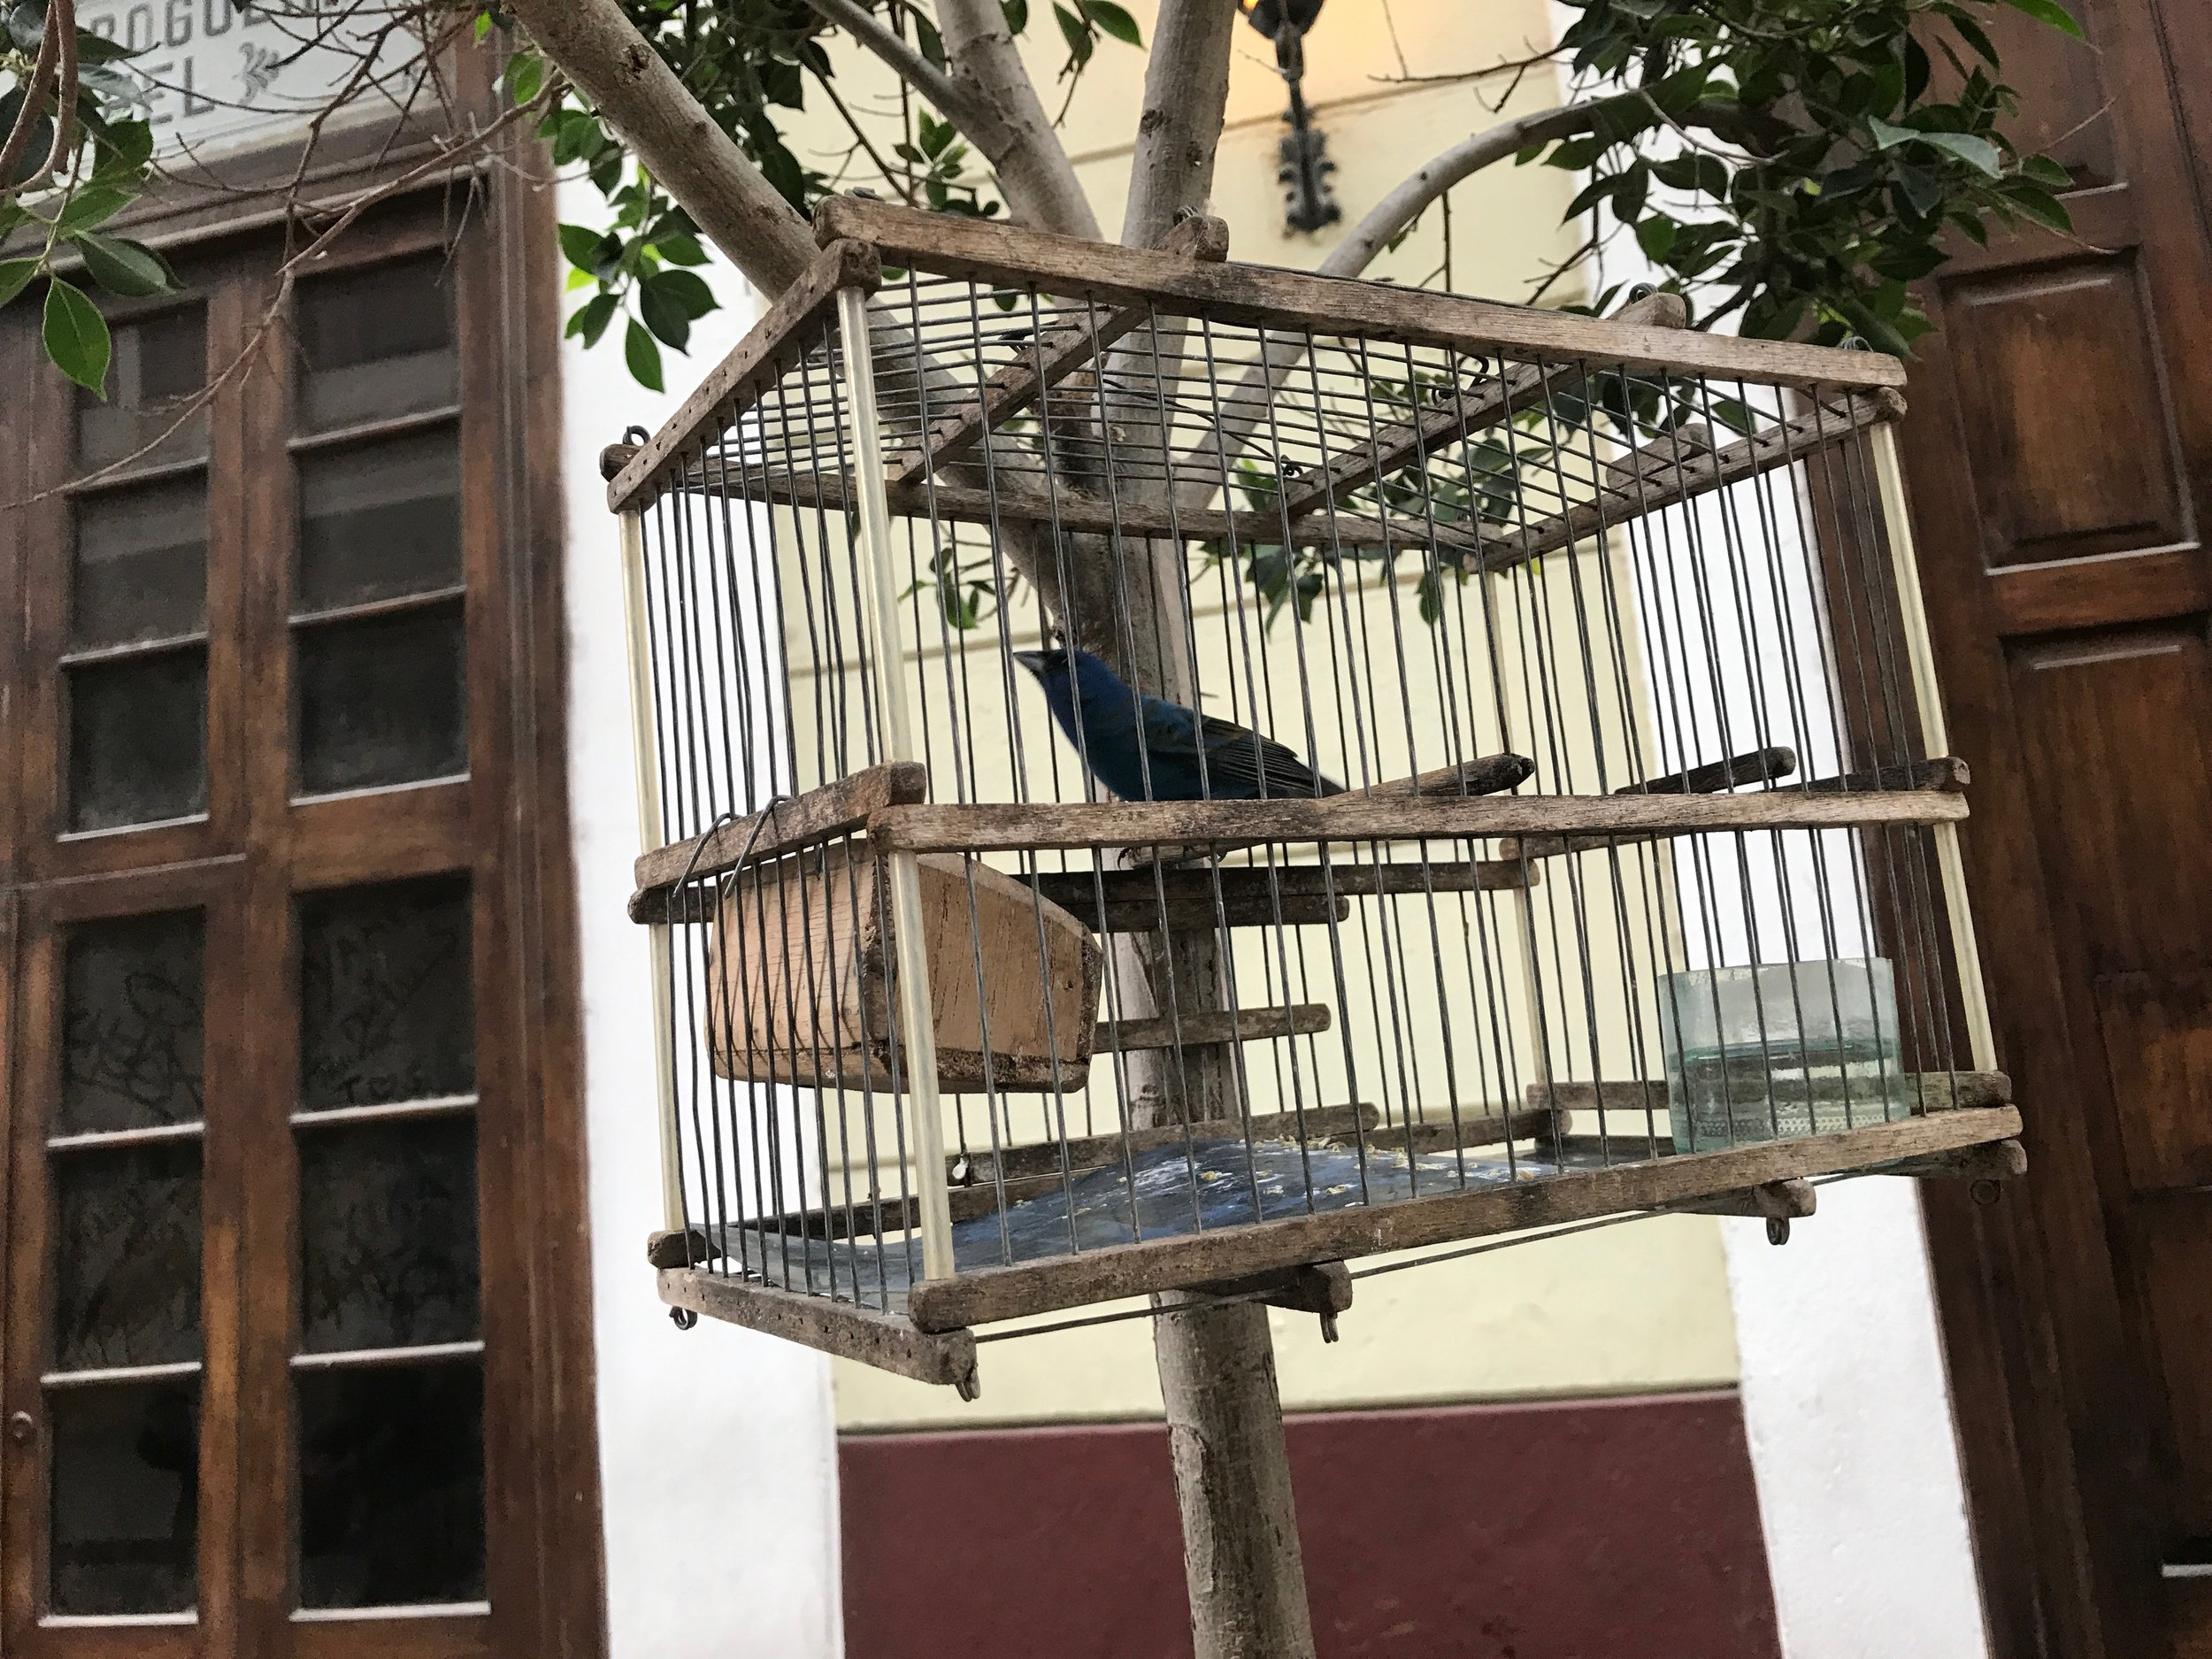 An indigo bunting for sale outside of my hotel in Havana. One of many seen on my trip to Cuba last year.